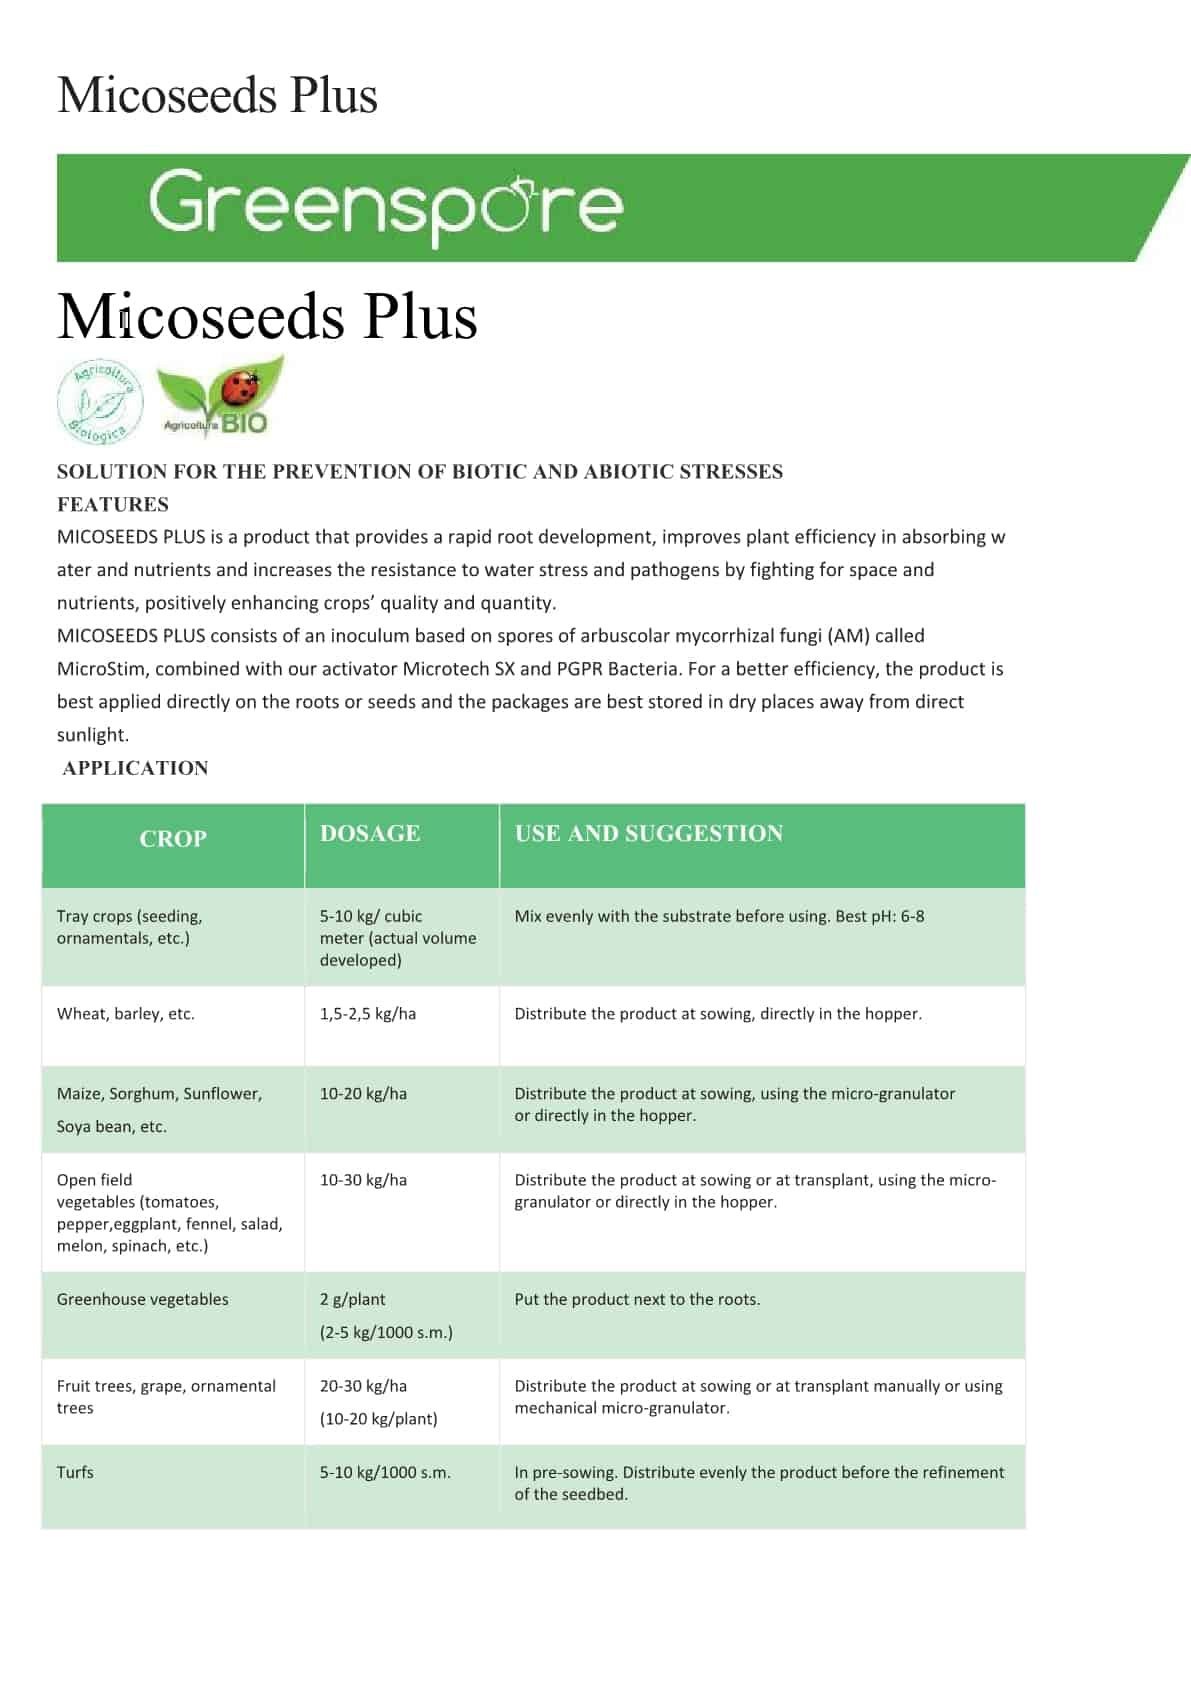 micoseeds plus for cereals 2017 JOSA2